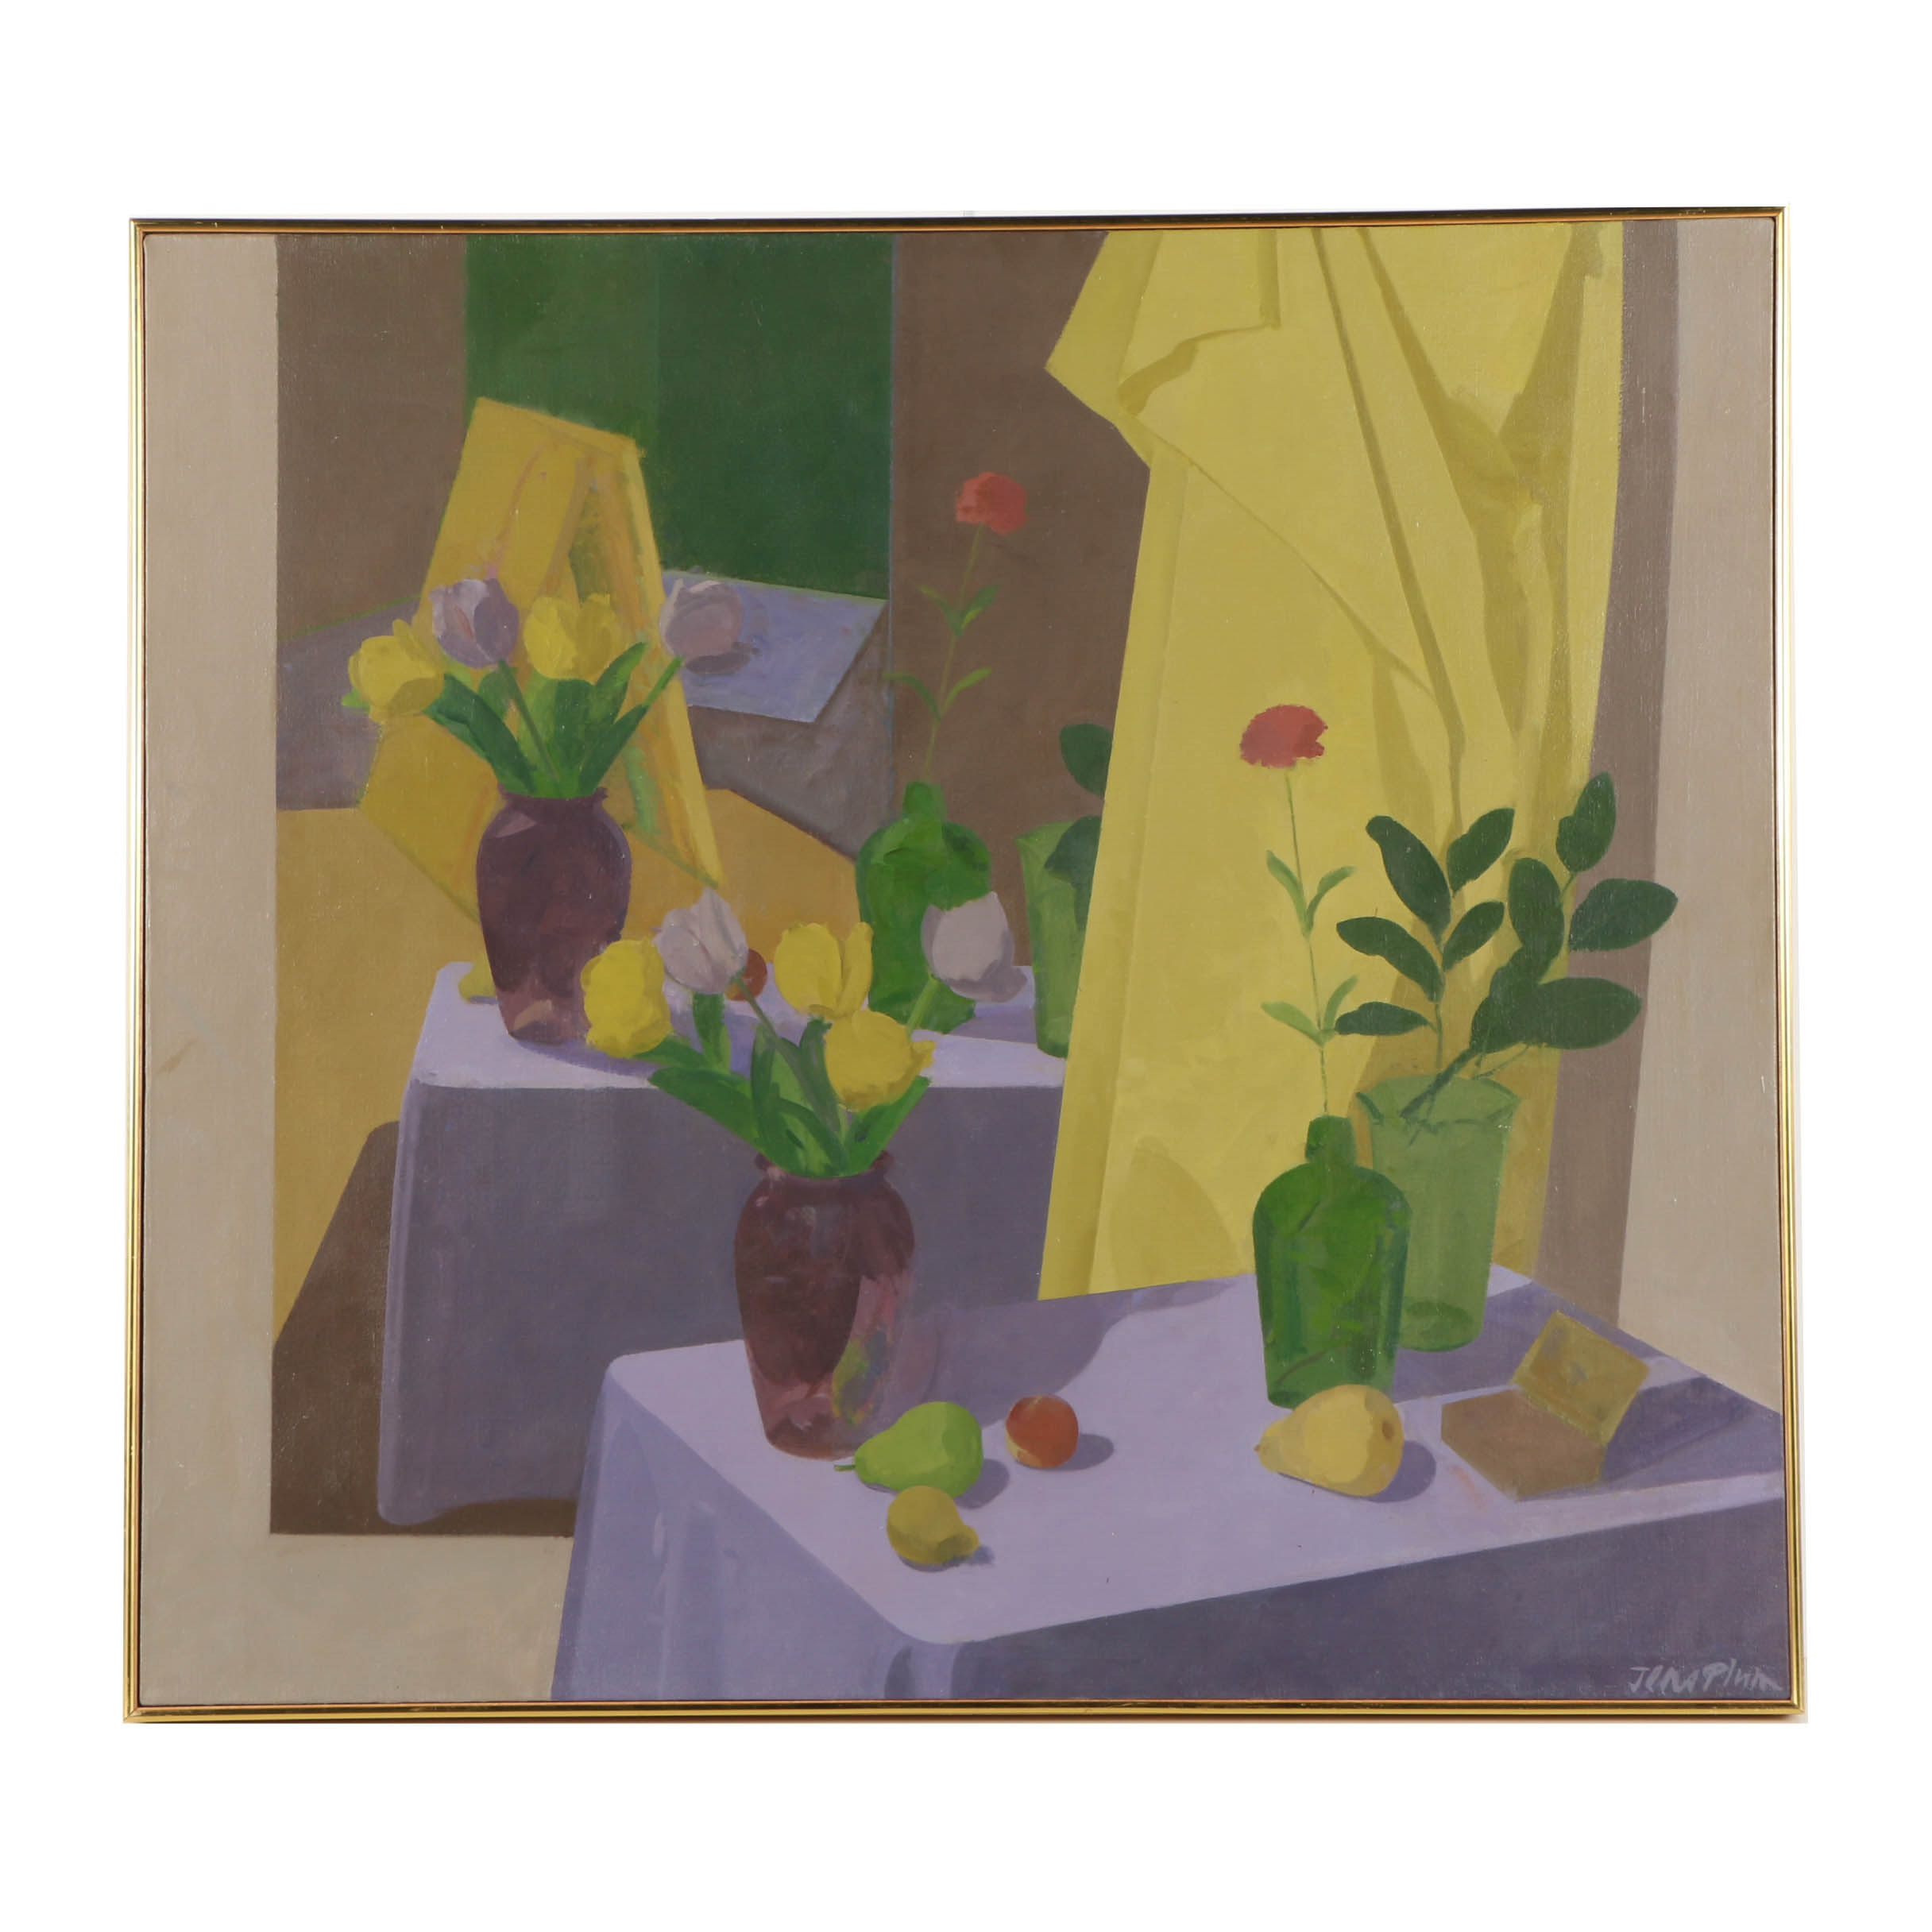 Jens Plum 1989 Oil Painting on Canvas of Interior with Still Life